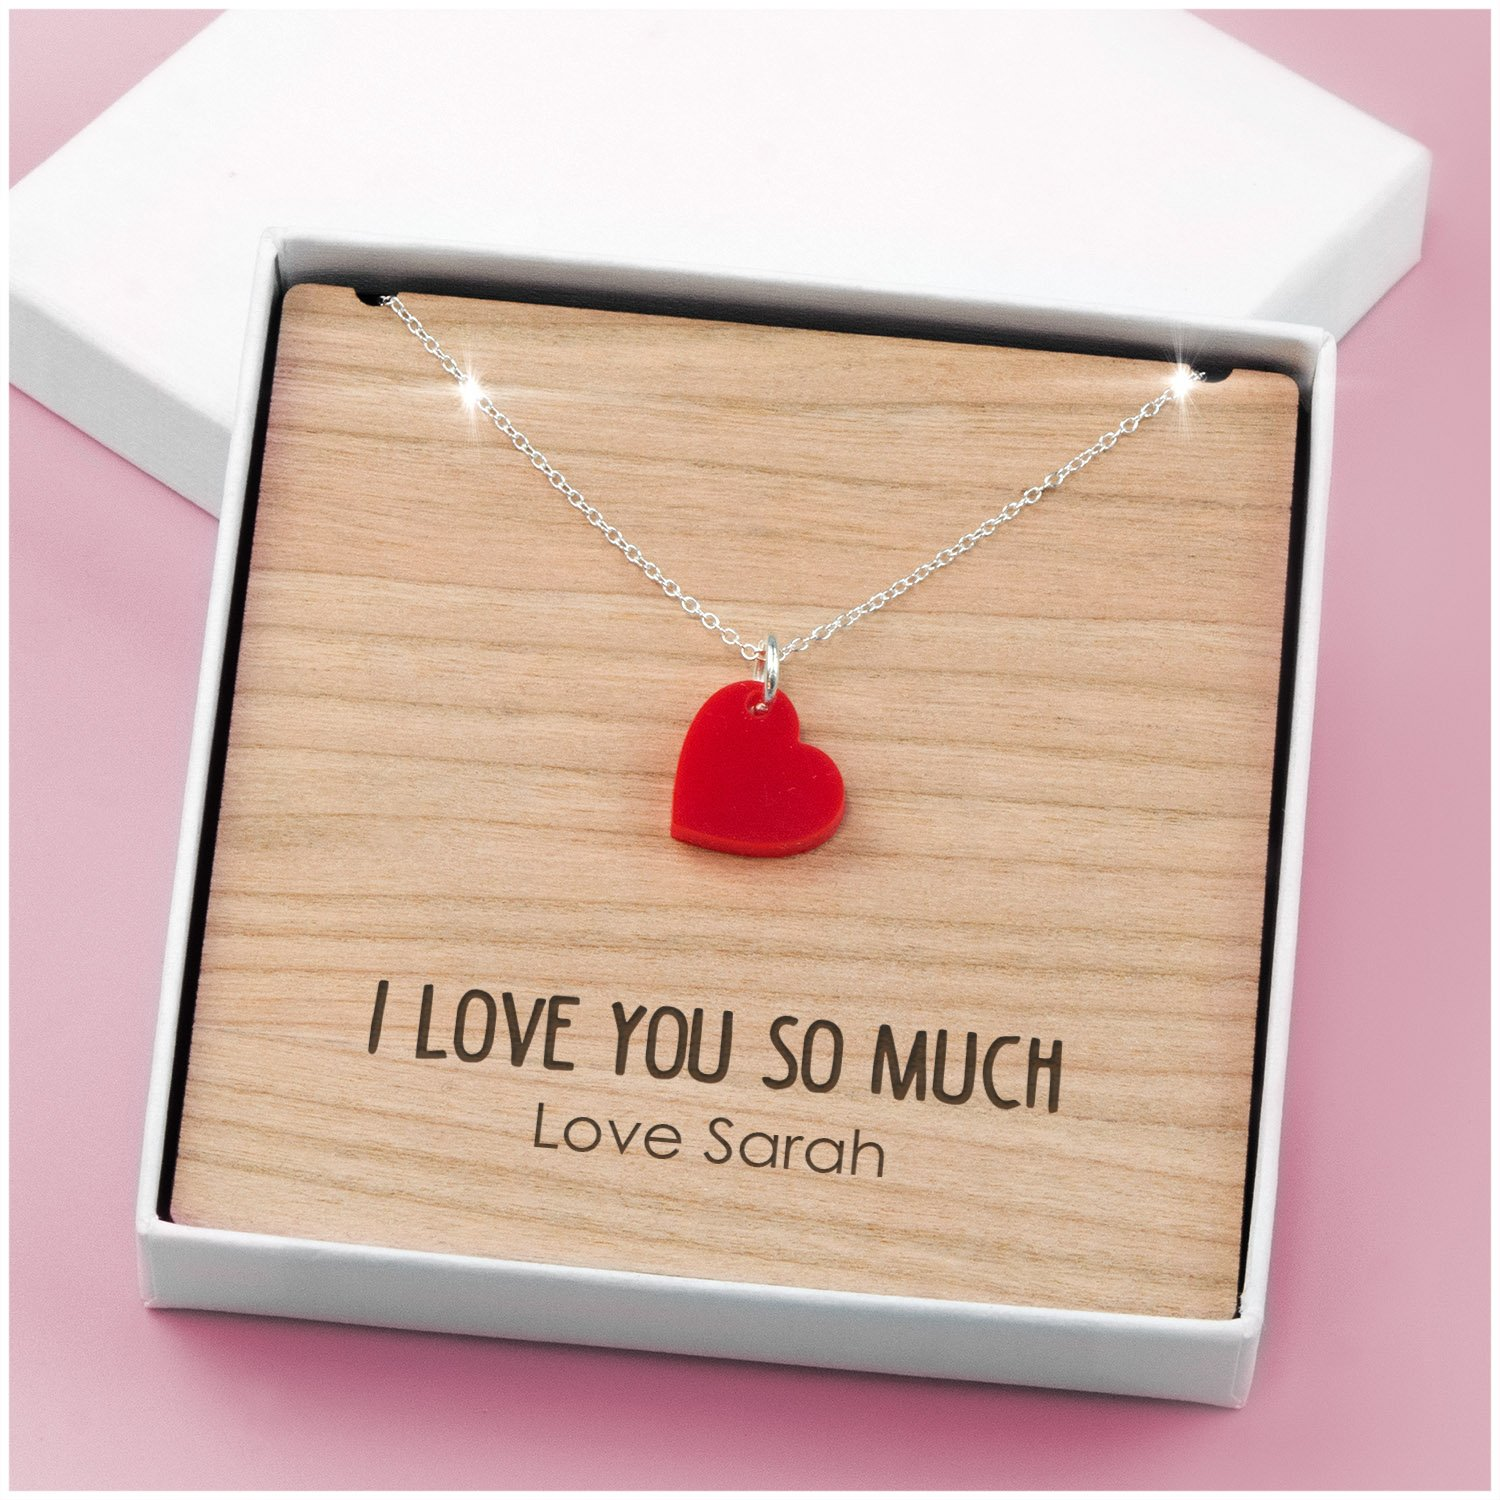 I LOVE YOU Special Engraved PERSONALISED Necklace Gift Mothers Day Mum Mummy Nan Sterling Silver 18 PERSONALISED Necklace Engraved 4mm Cherry with Presentation Gift Box Birthdays Christmas Gifts Presents